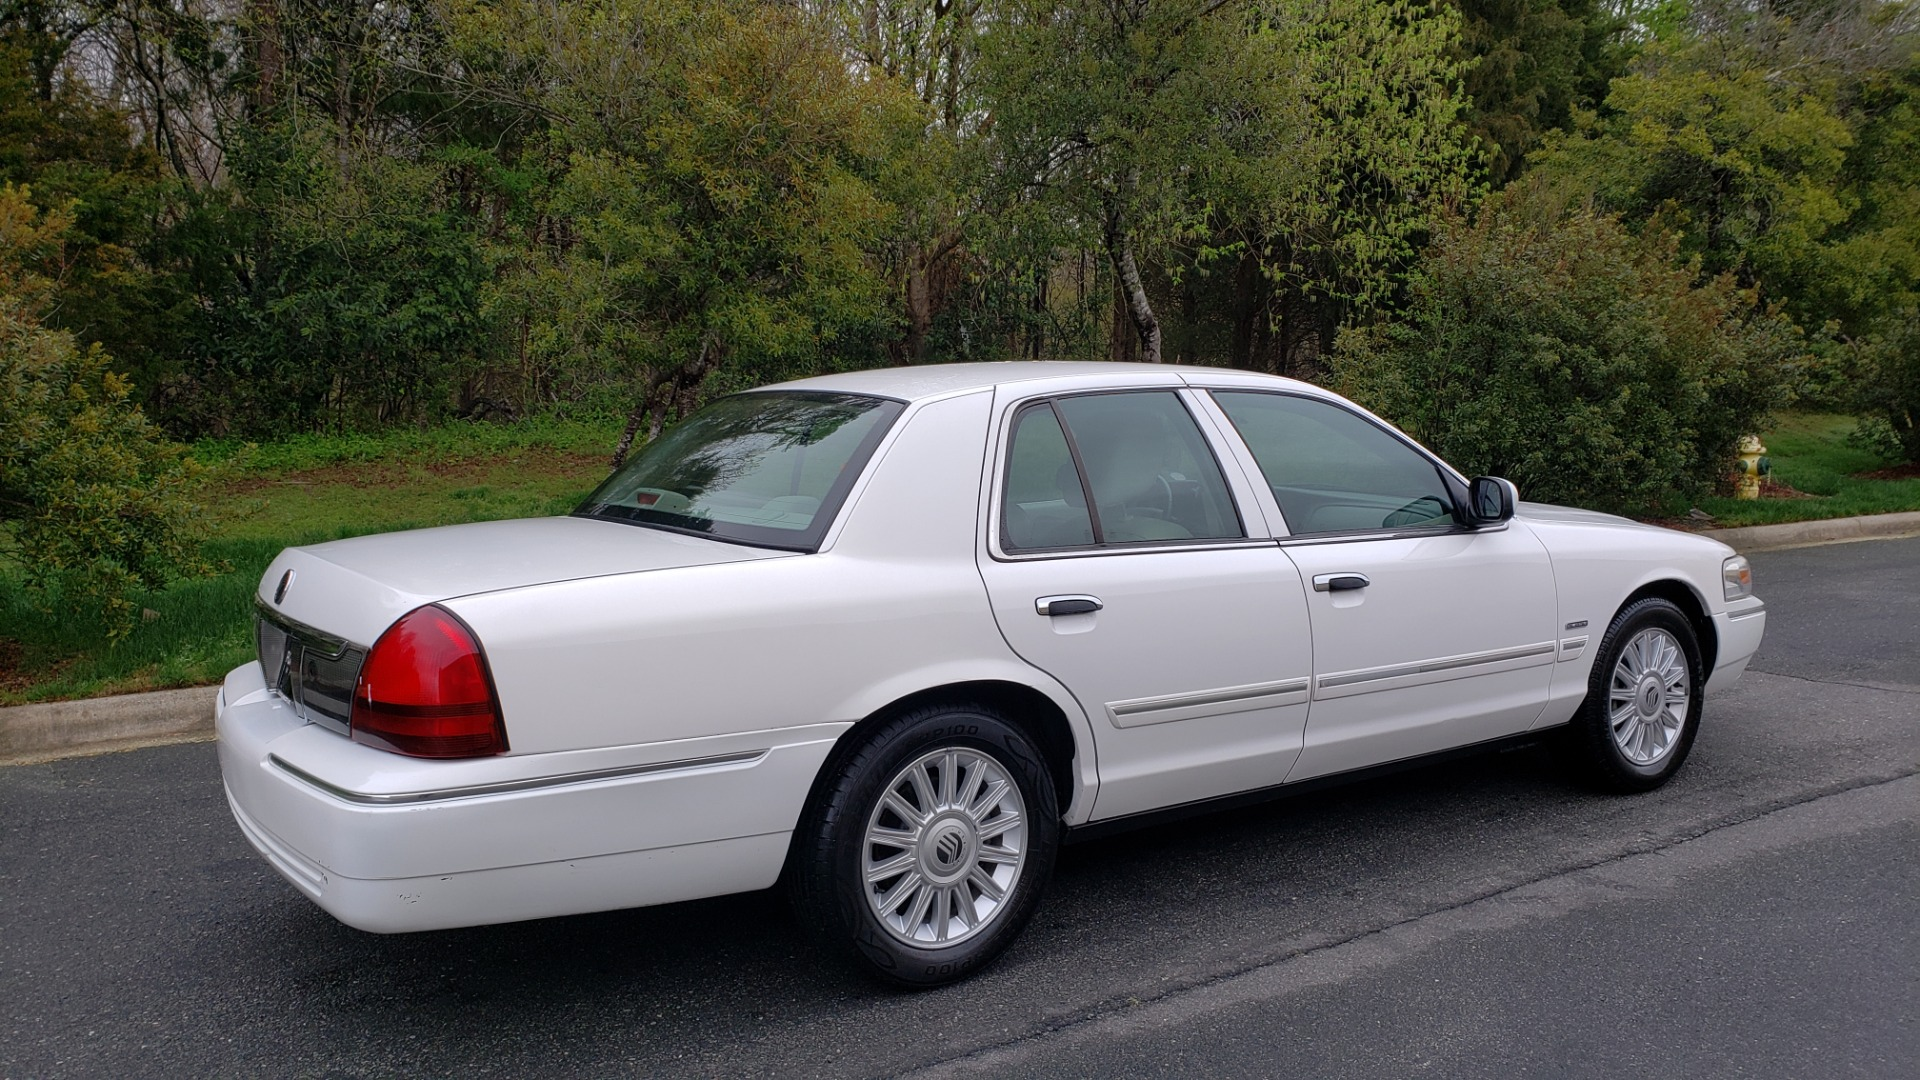 Used 2011 Mercury GRAND MARQUIS LS / 4.6L V8 / 4-SPD AUTO / KEYLESS ENTRY / LOW MILES for sale Sold at Formula Imports in Charlotte NC 28227 6